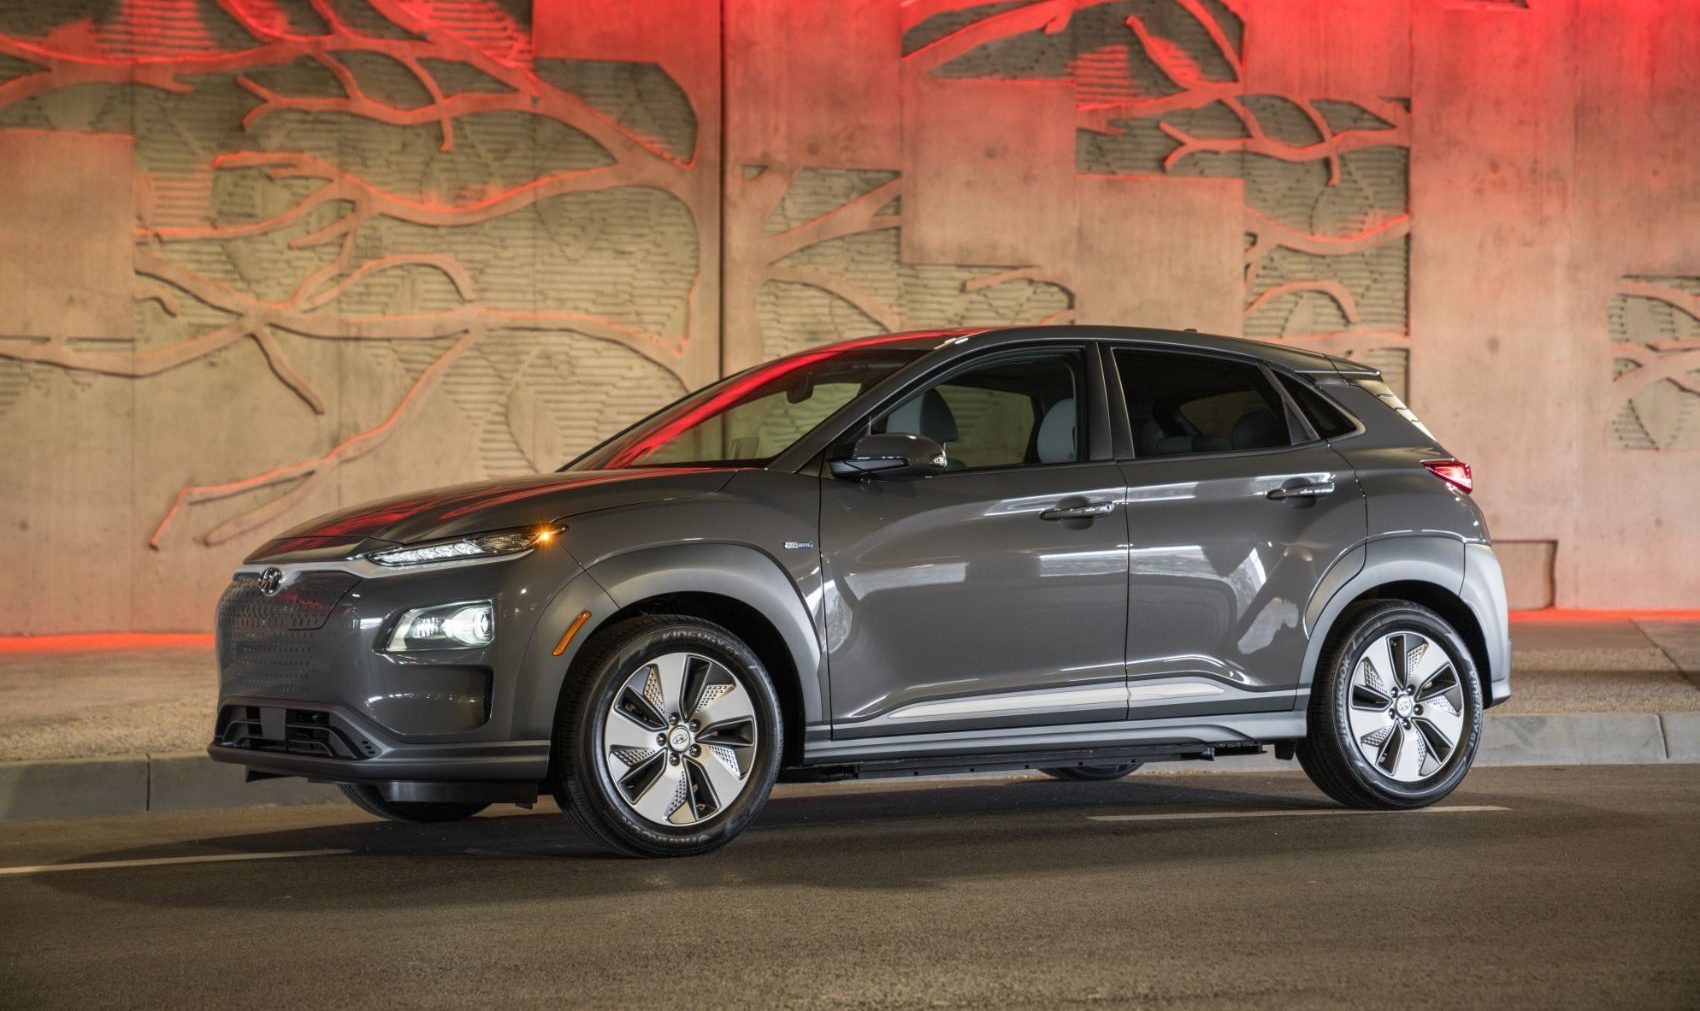 2021 Hyundai Kona Ev Changes, Awd, Review | 2022 Hyundai